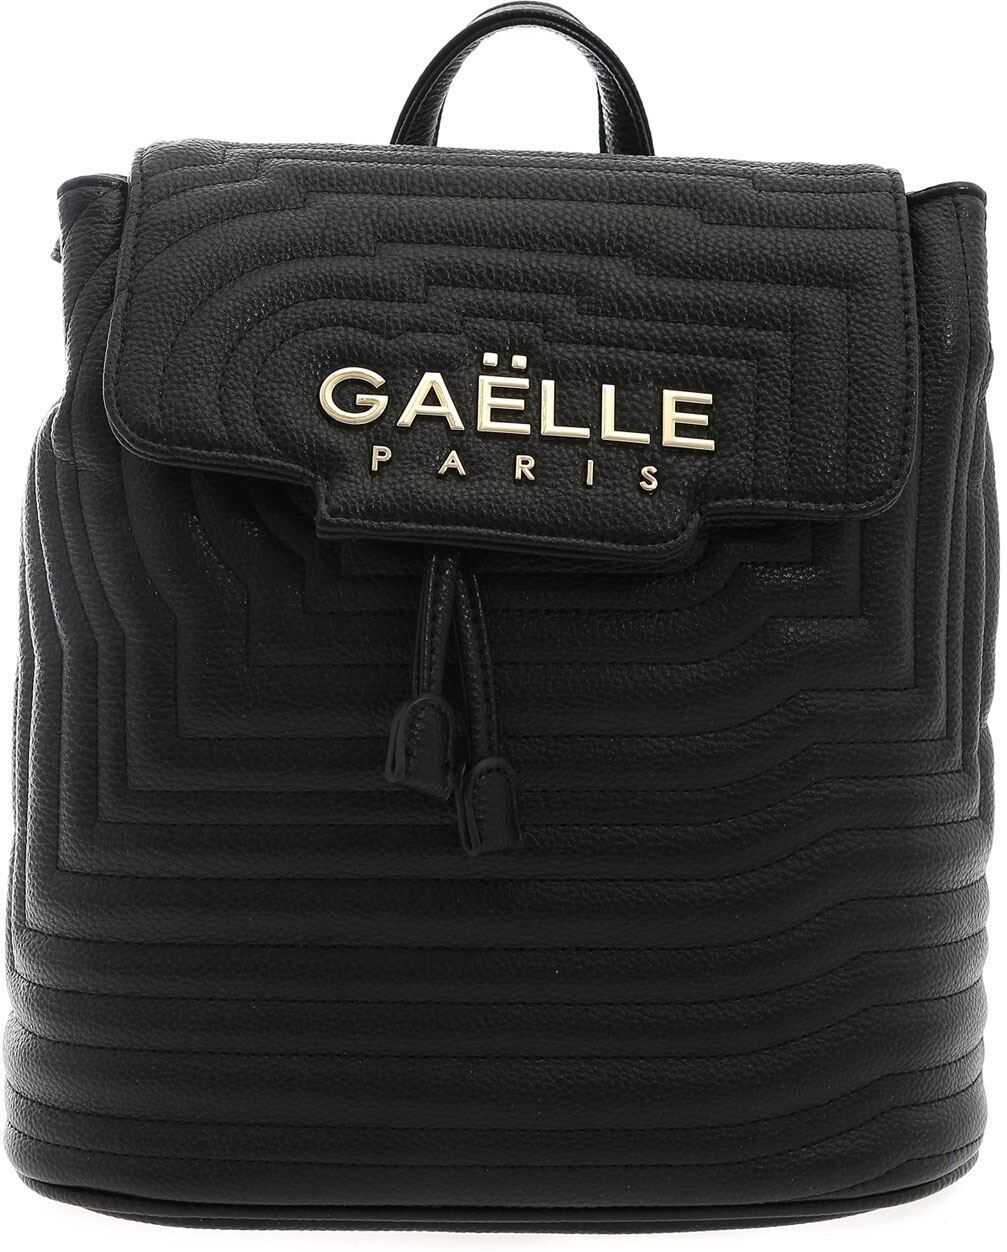 GAëLLE Paris Synthetic Leather Backpack In Black Black